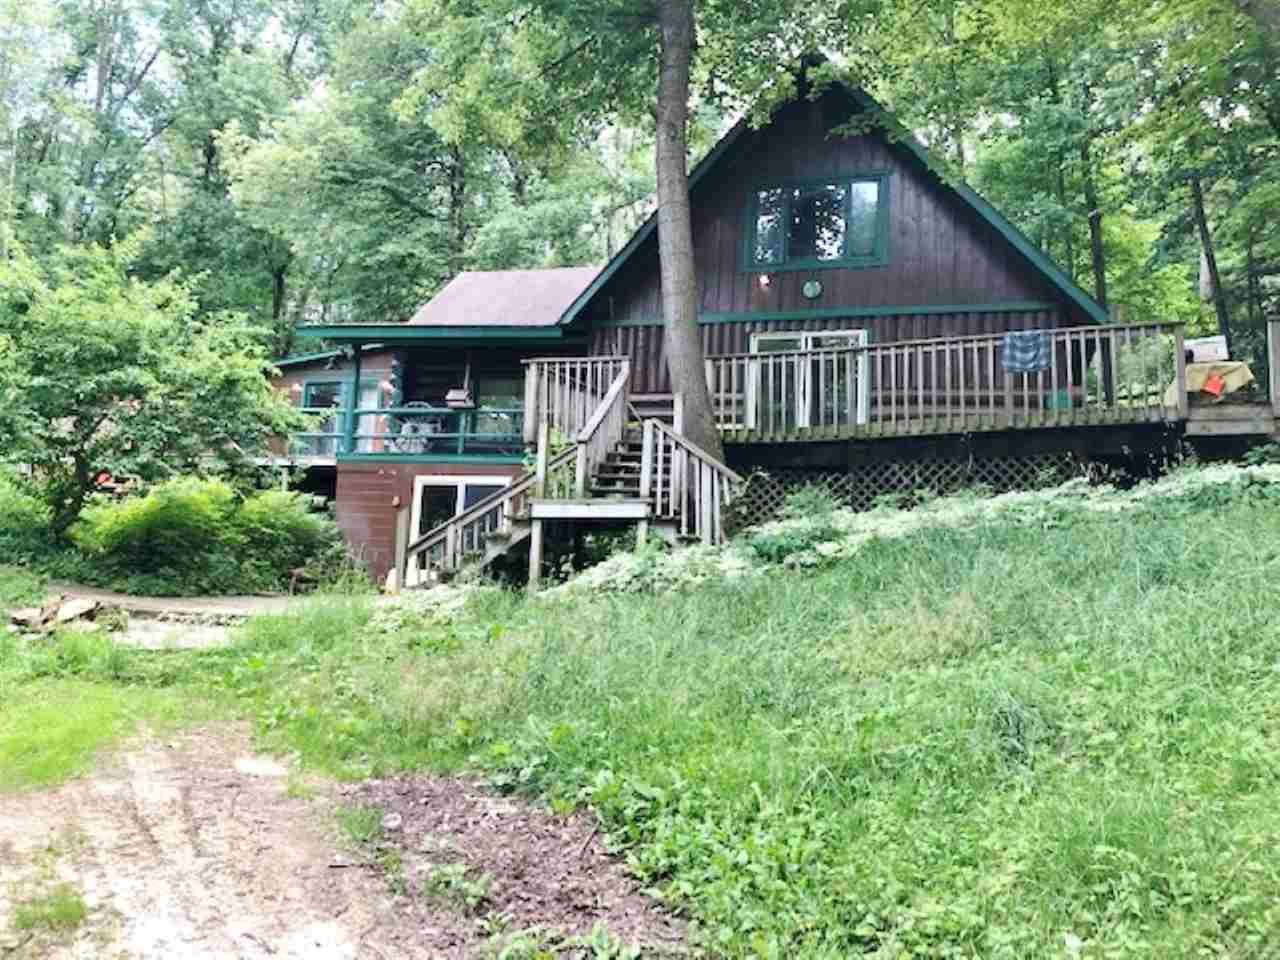 Log Home On 9 Acres Of Privacy! Hobby Farm, Set Up For Horses, Or Other Animals If You Like!  Full Log Home With Walk Out Basement.  Small Barn, Out Buildings, Detached Two Car Garage, Dog Kennel.  With A Little TLC You Will Have A Great Property!  The Location Is Fantastic - Take A Drive And Check This Property Out.